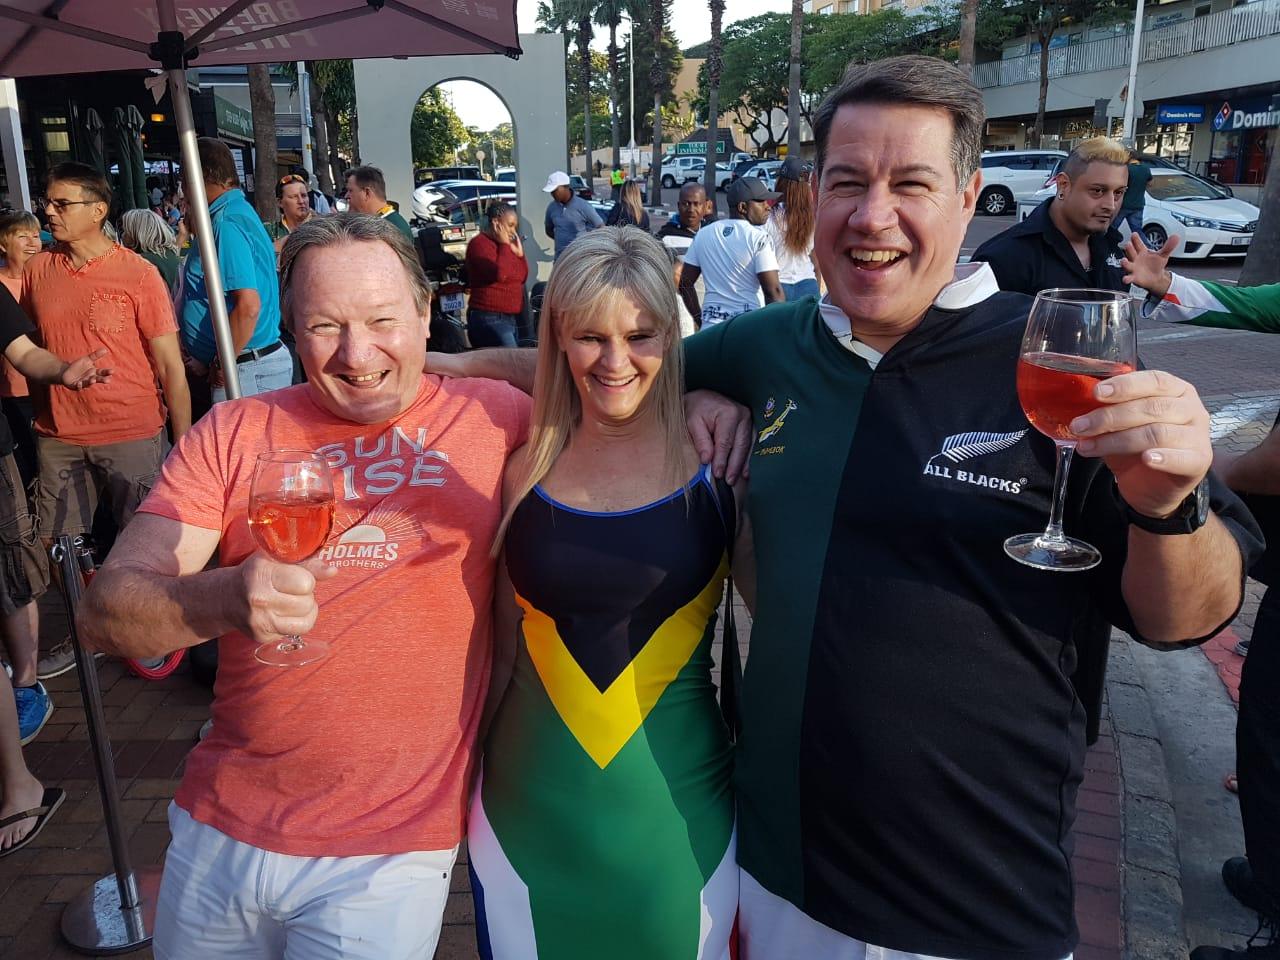 FUN IN THE SUN: Rob Rob O Connorman, Liz Van Huysteen and Ross Barber outside The George on matchday. Barber's loyalties seem to be divided.